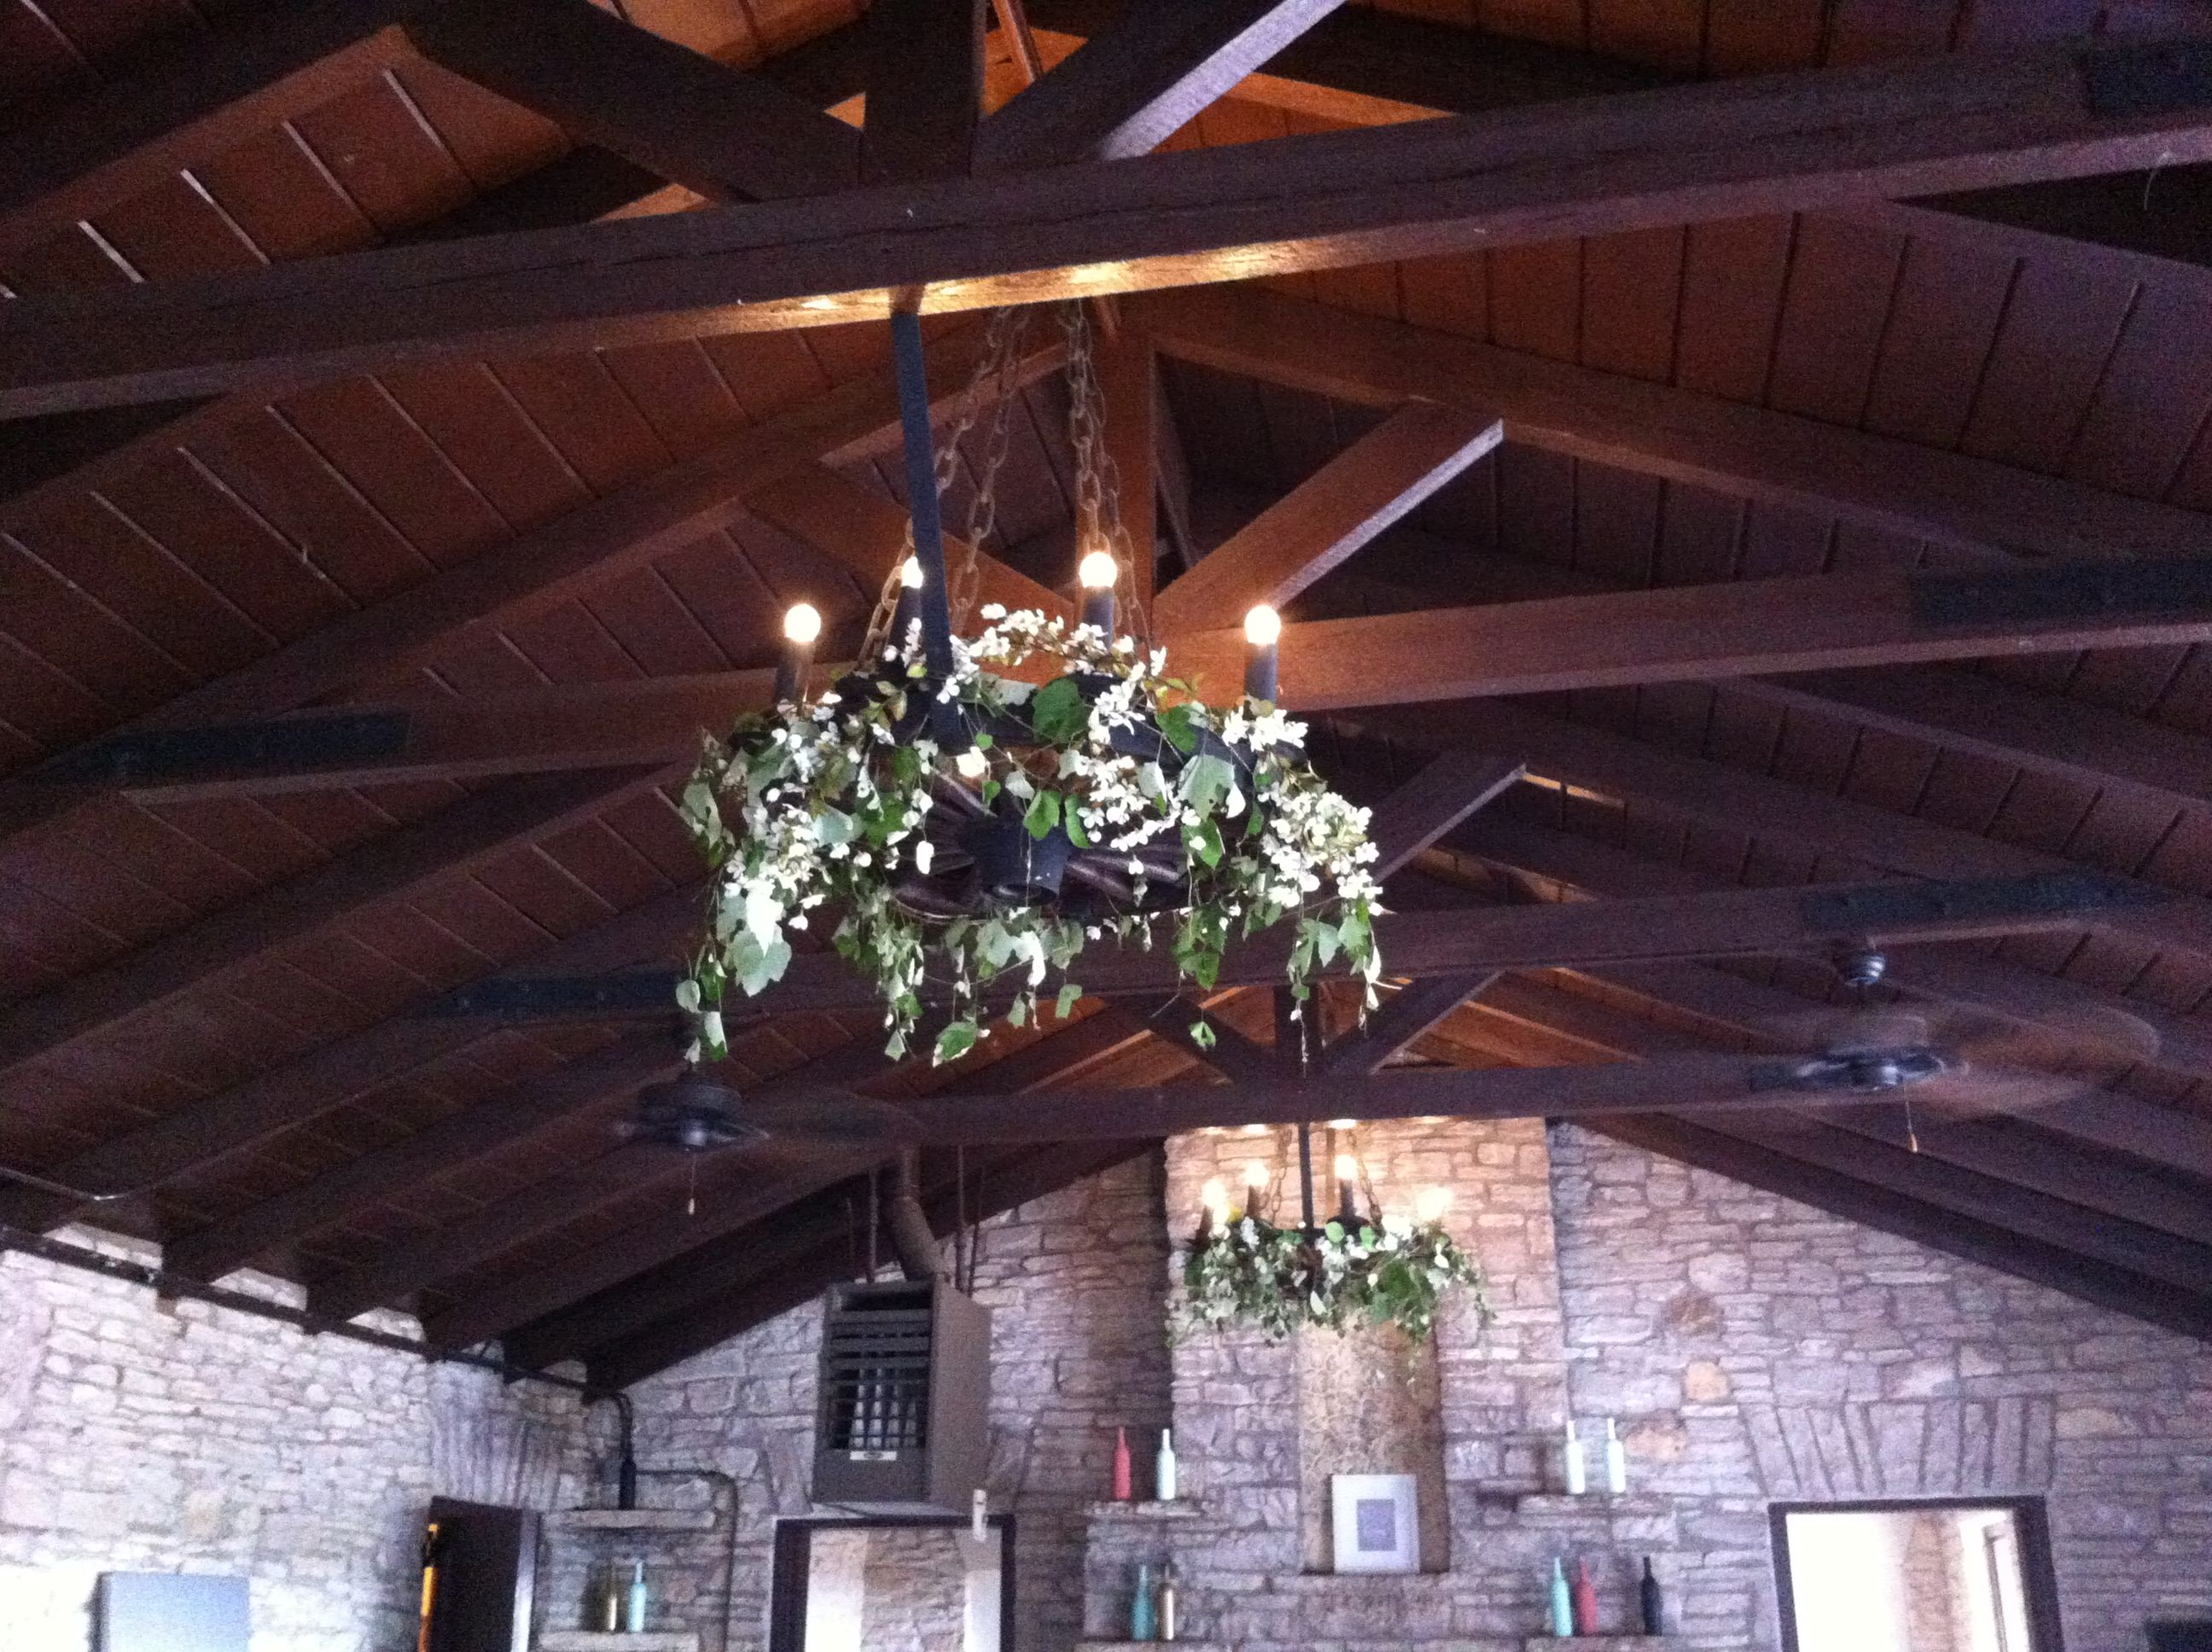 Thirty day dash wedding and creative services rustic beams and